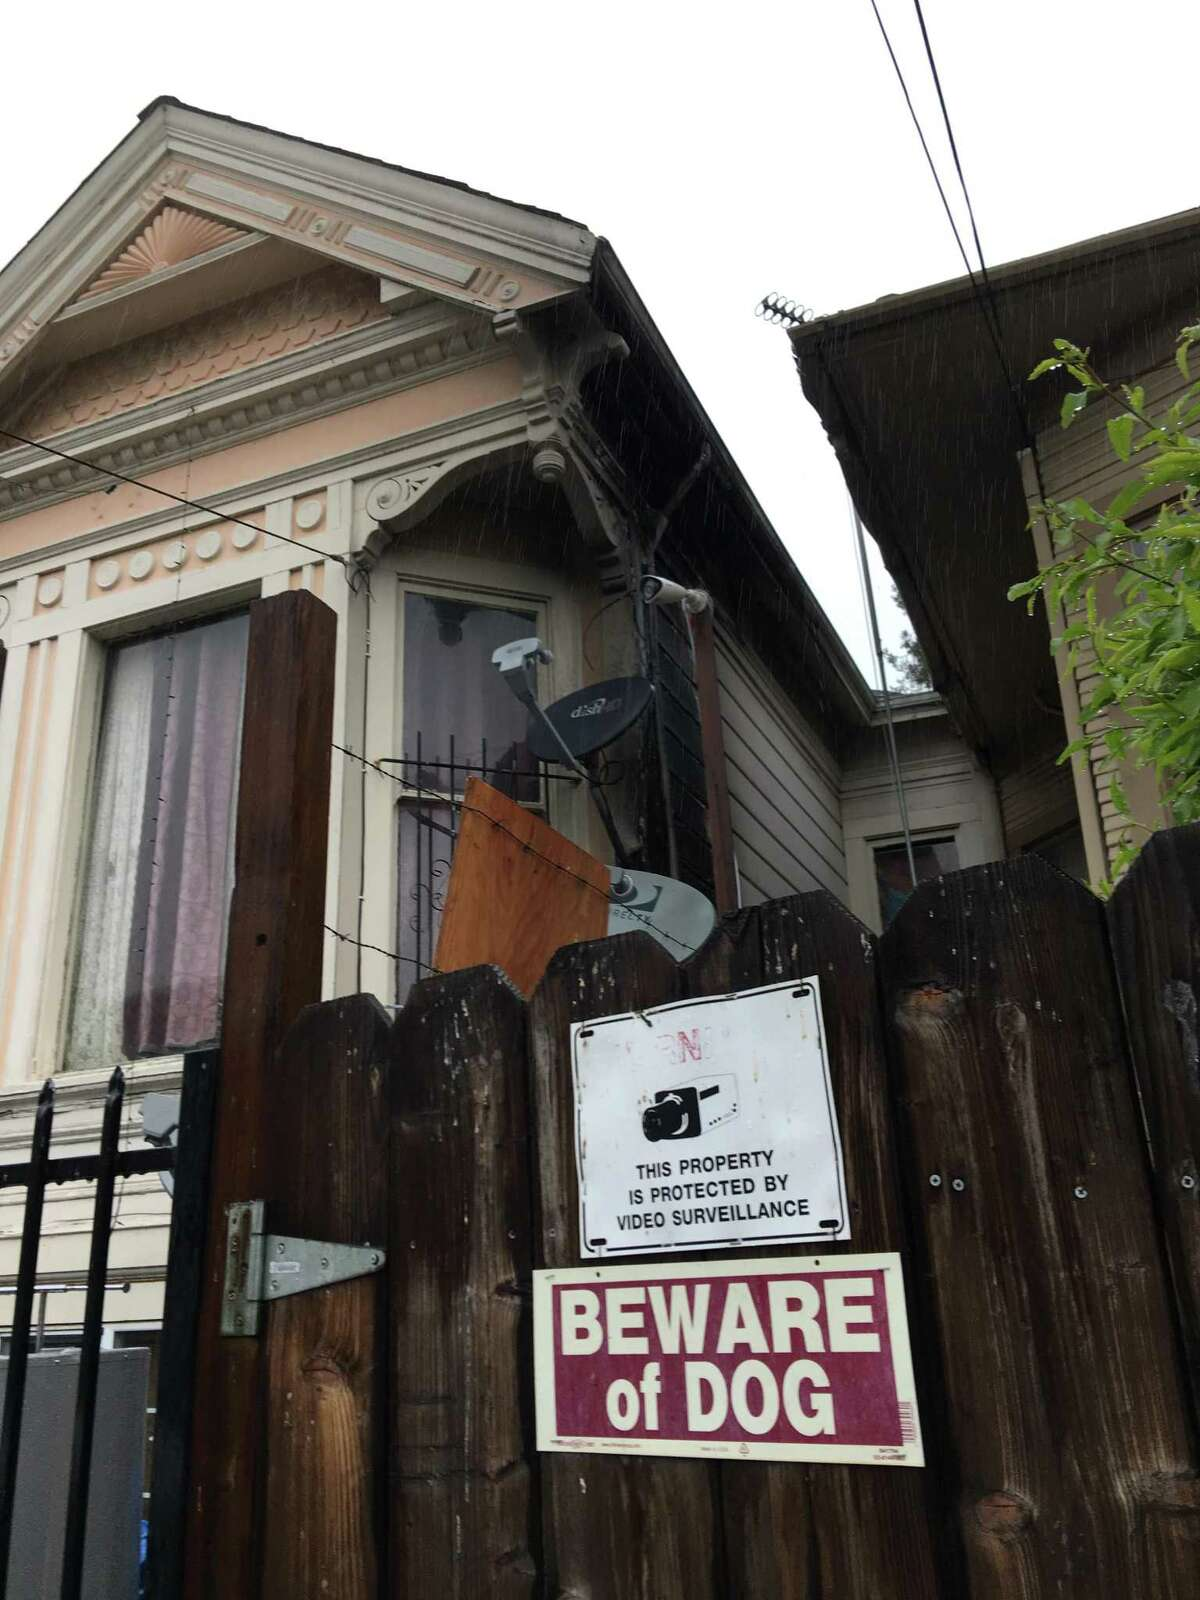 The apartment where arson suspect Dustin Bellinger lives was charred by a fire after embers from the Ice House construction site blaze flew into the West Oakland neighborhood.